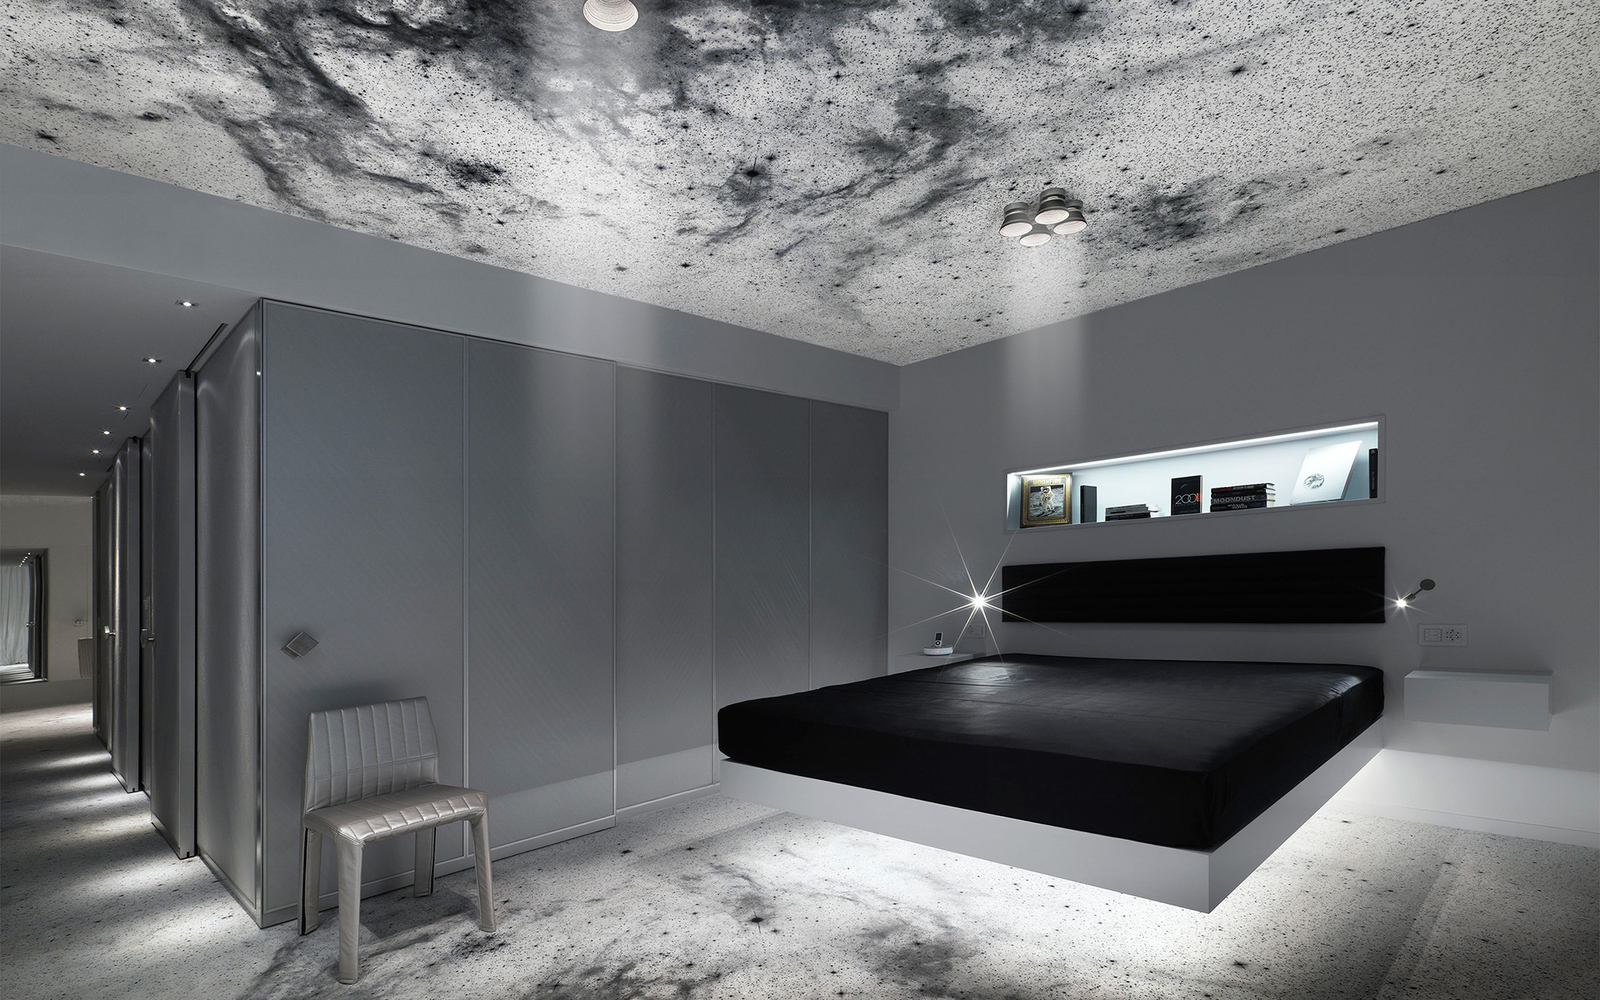 Seven Space Themed Hotels That Are Out Of This World